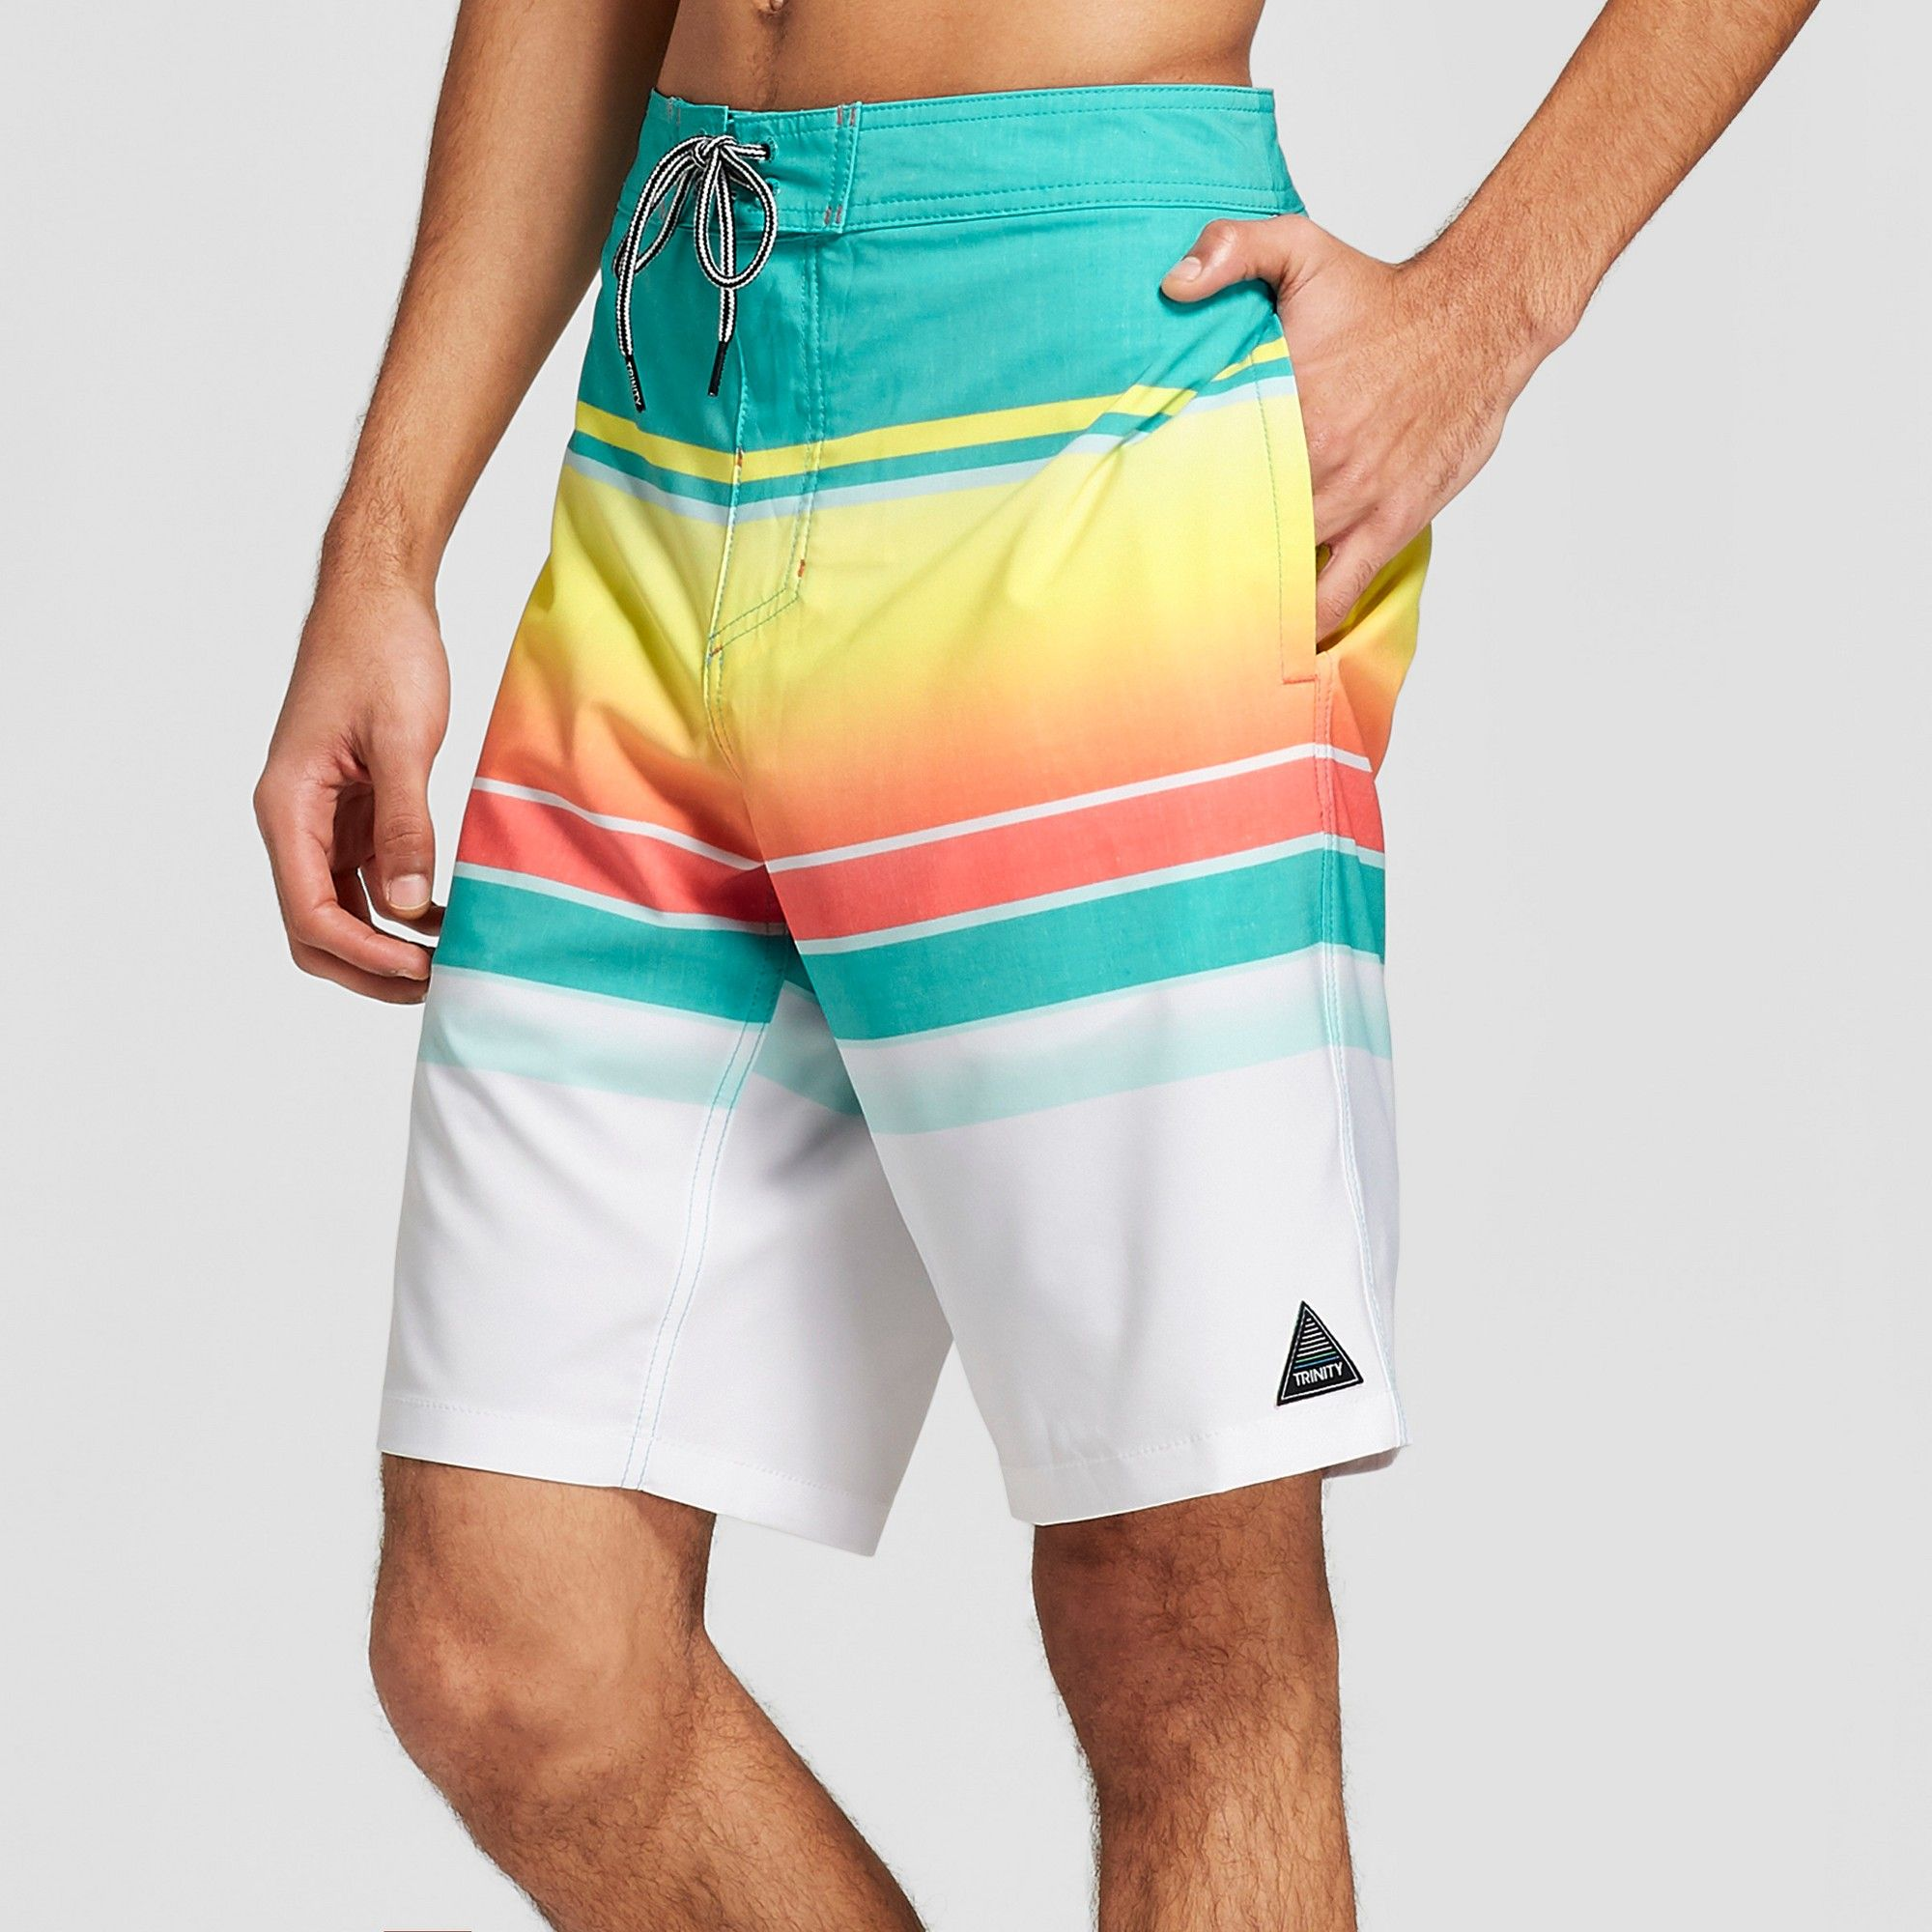 ba926890b287f Trinity Collective Men's Striped 10 Blaster Board Shorts - Teal Lights 33,  Blue